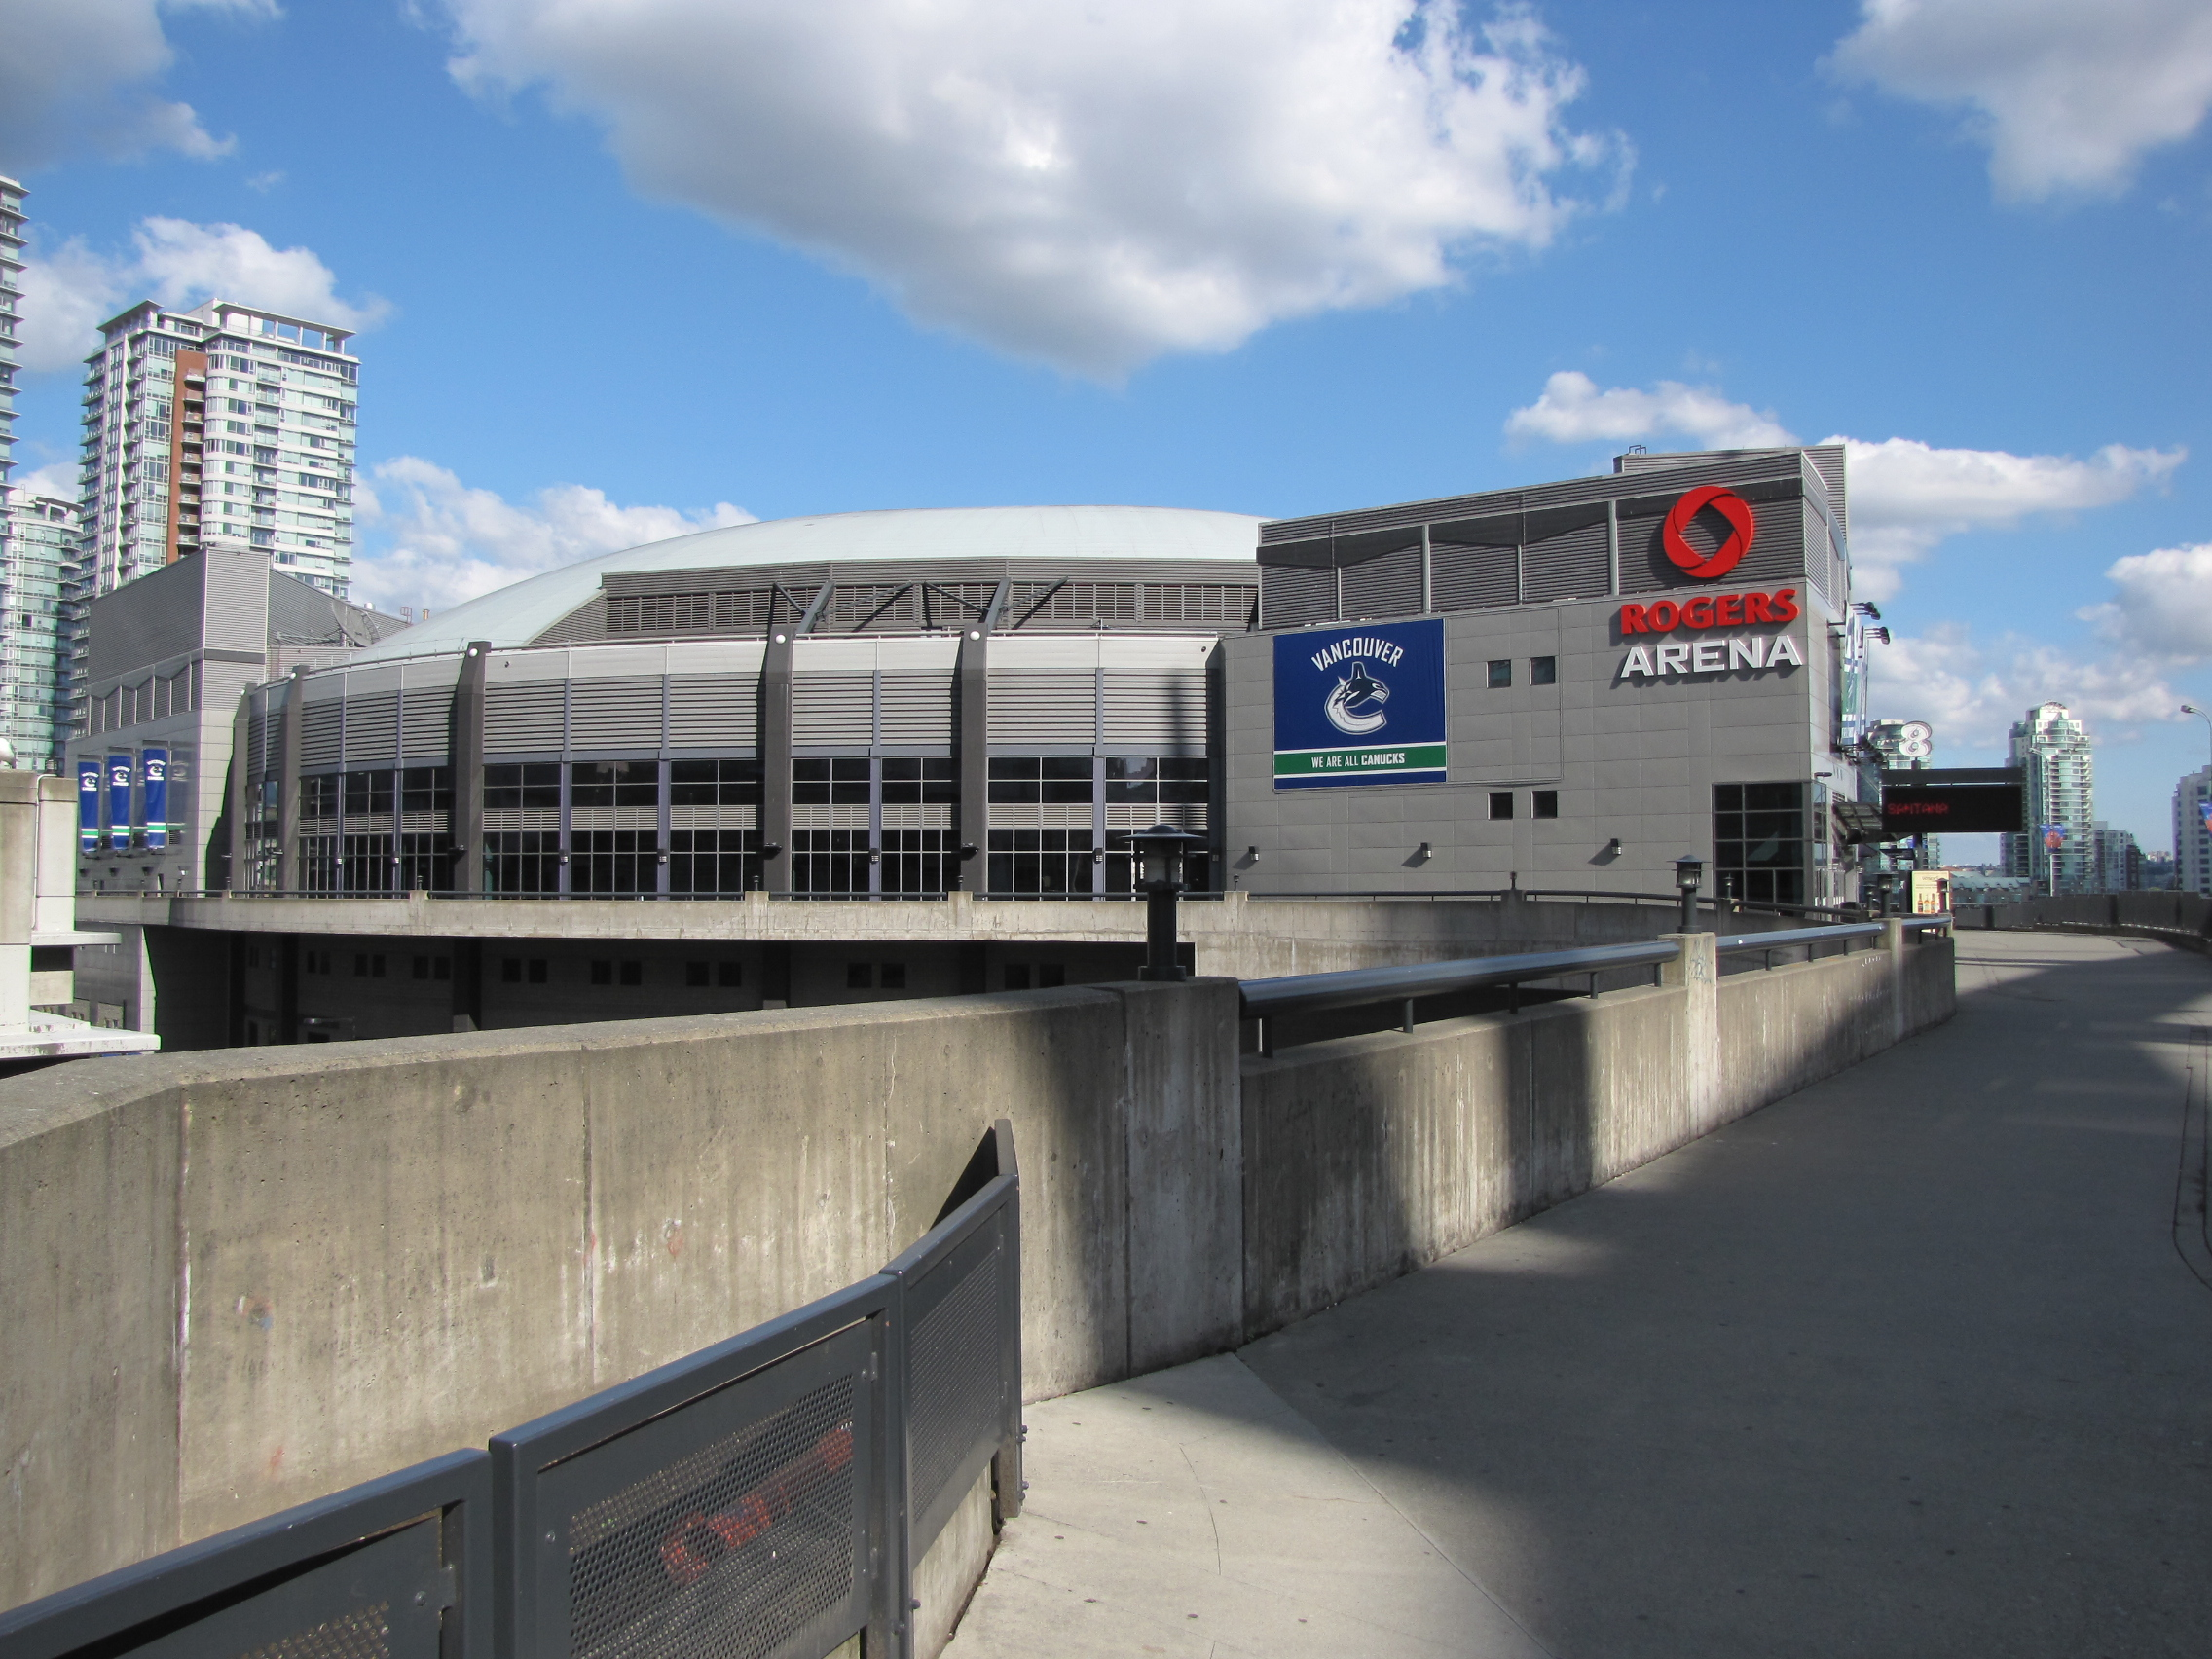 <a href='http://www.ticketsreview.com/venue/rogers-arena-schedule/'>Rogers Arena tickets</a>